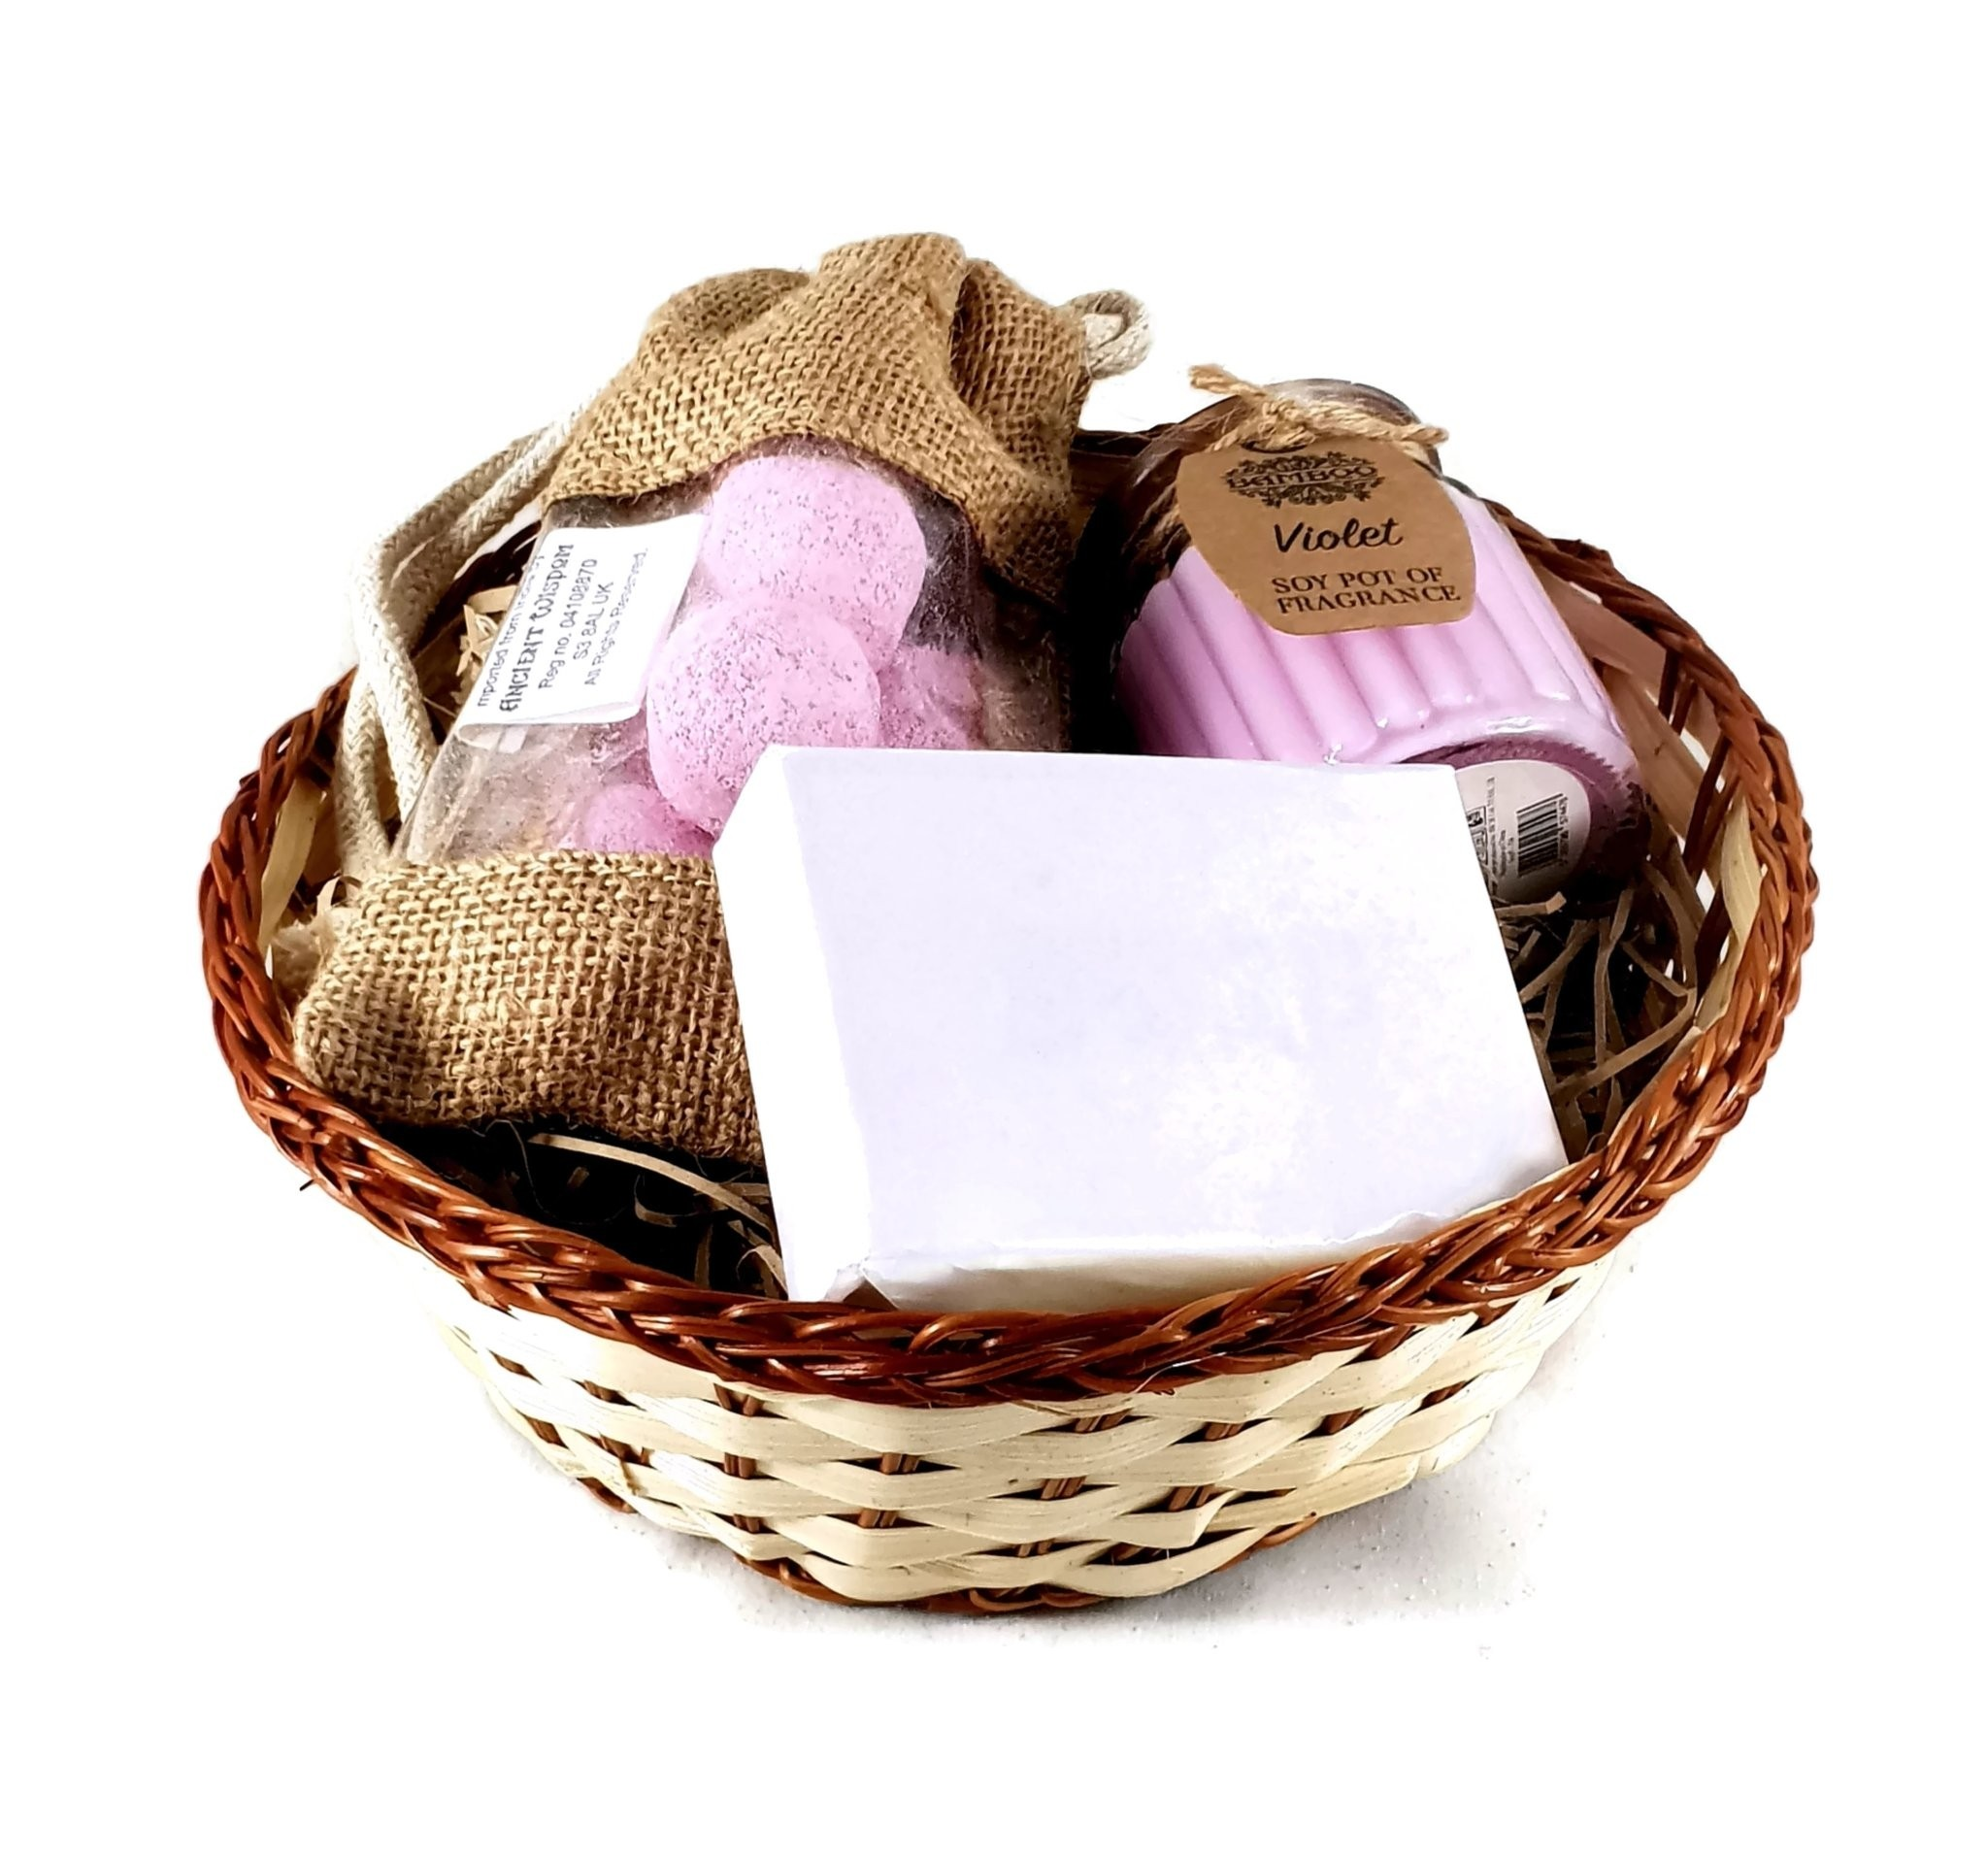 Handmade Soap & Bomb Gift Set